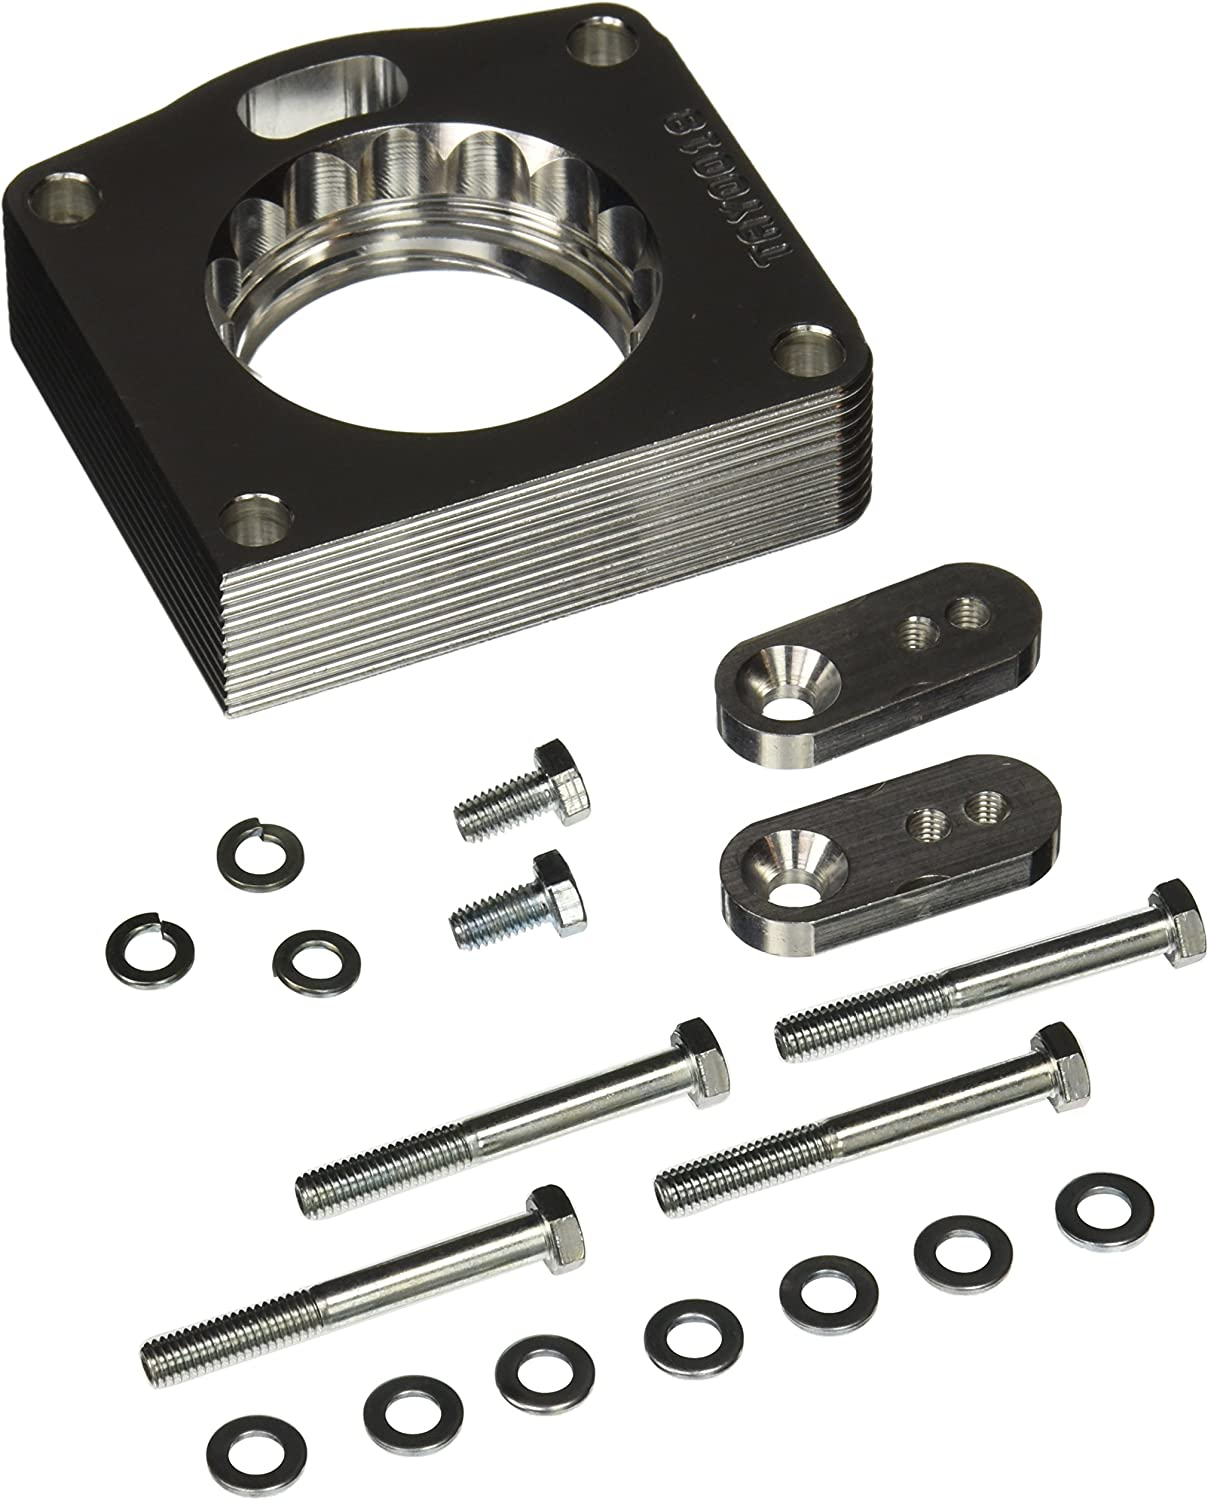 Taylor Cheap mail order specialty store Cable 30015 Power Max 67% OFF Tower Body Spacer Throttle